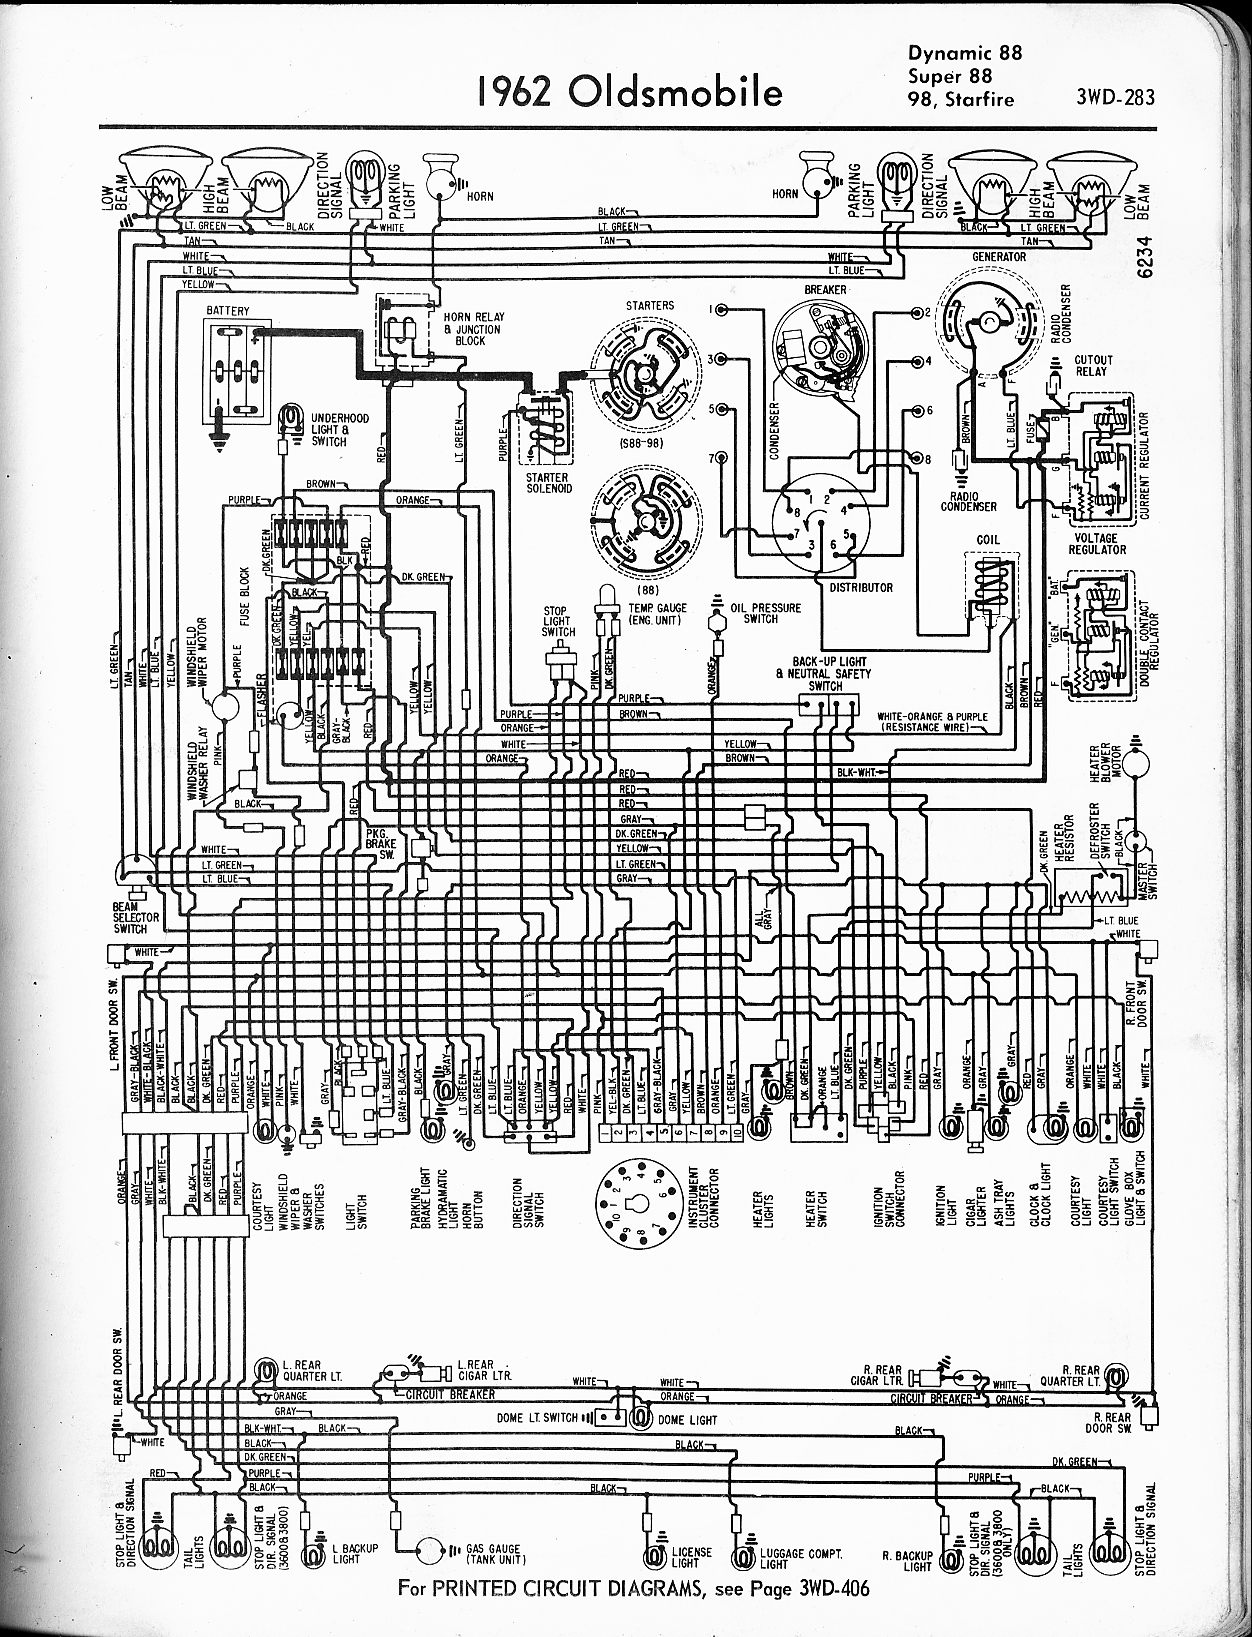 MWire5765 283 oldsmobile wiring diagrams the old car manual project  at bakdesigns.co